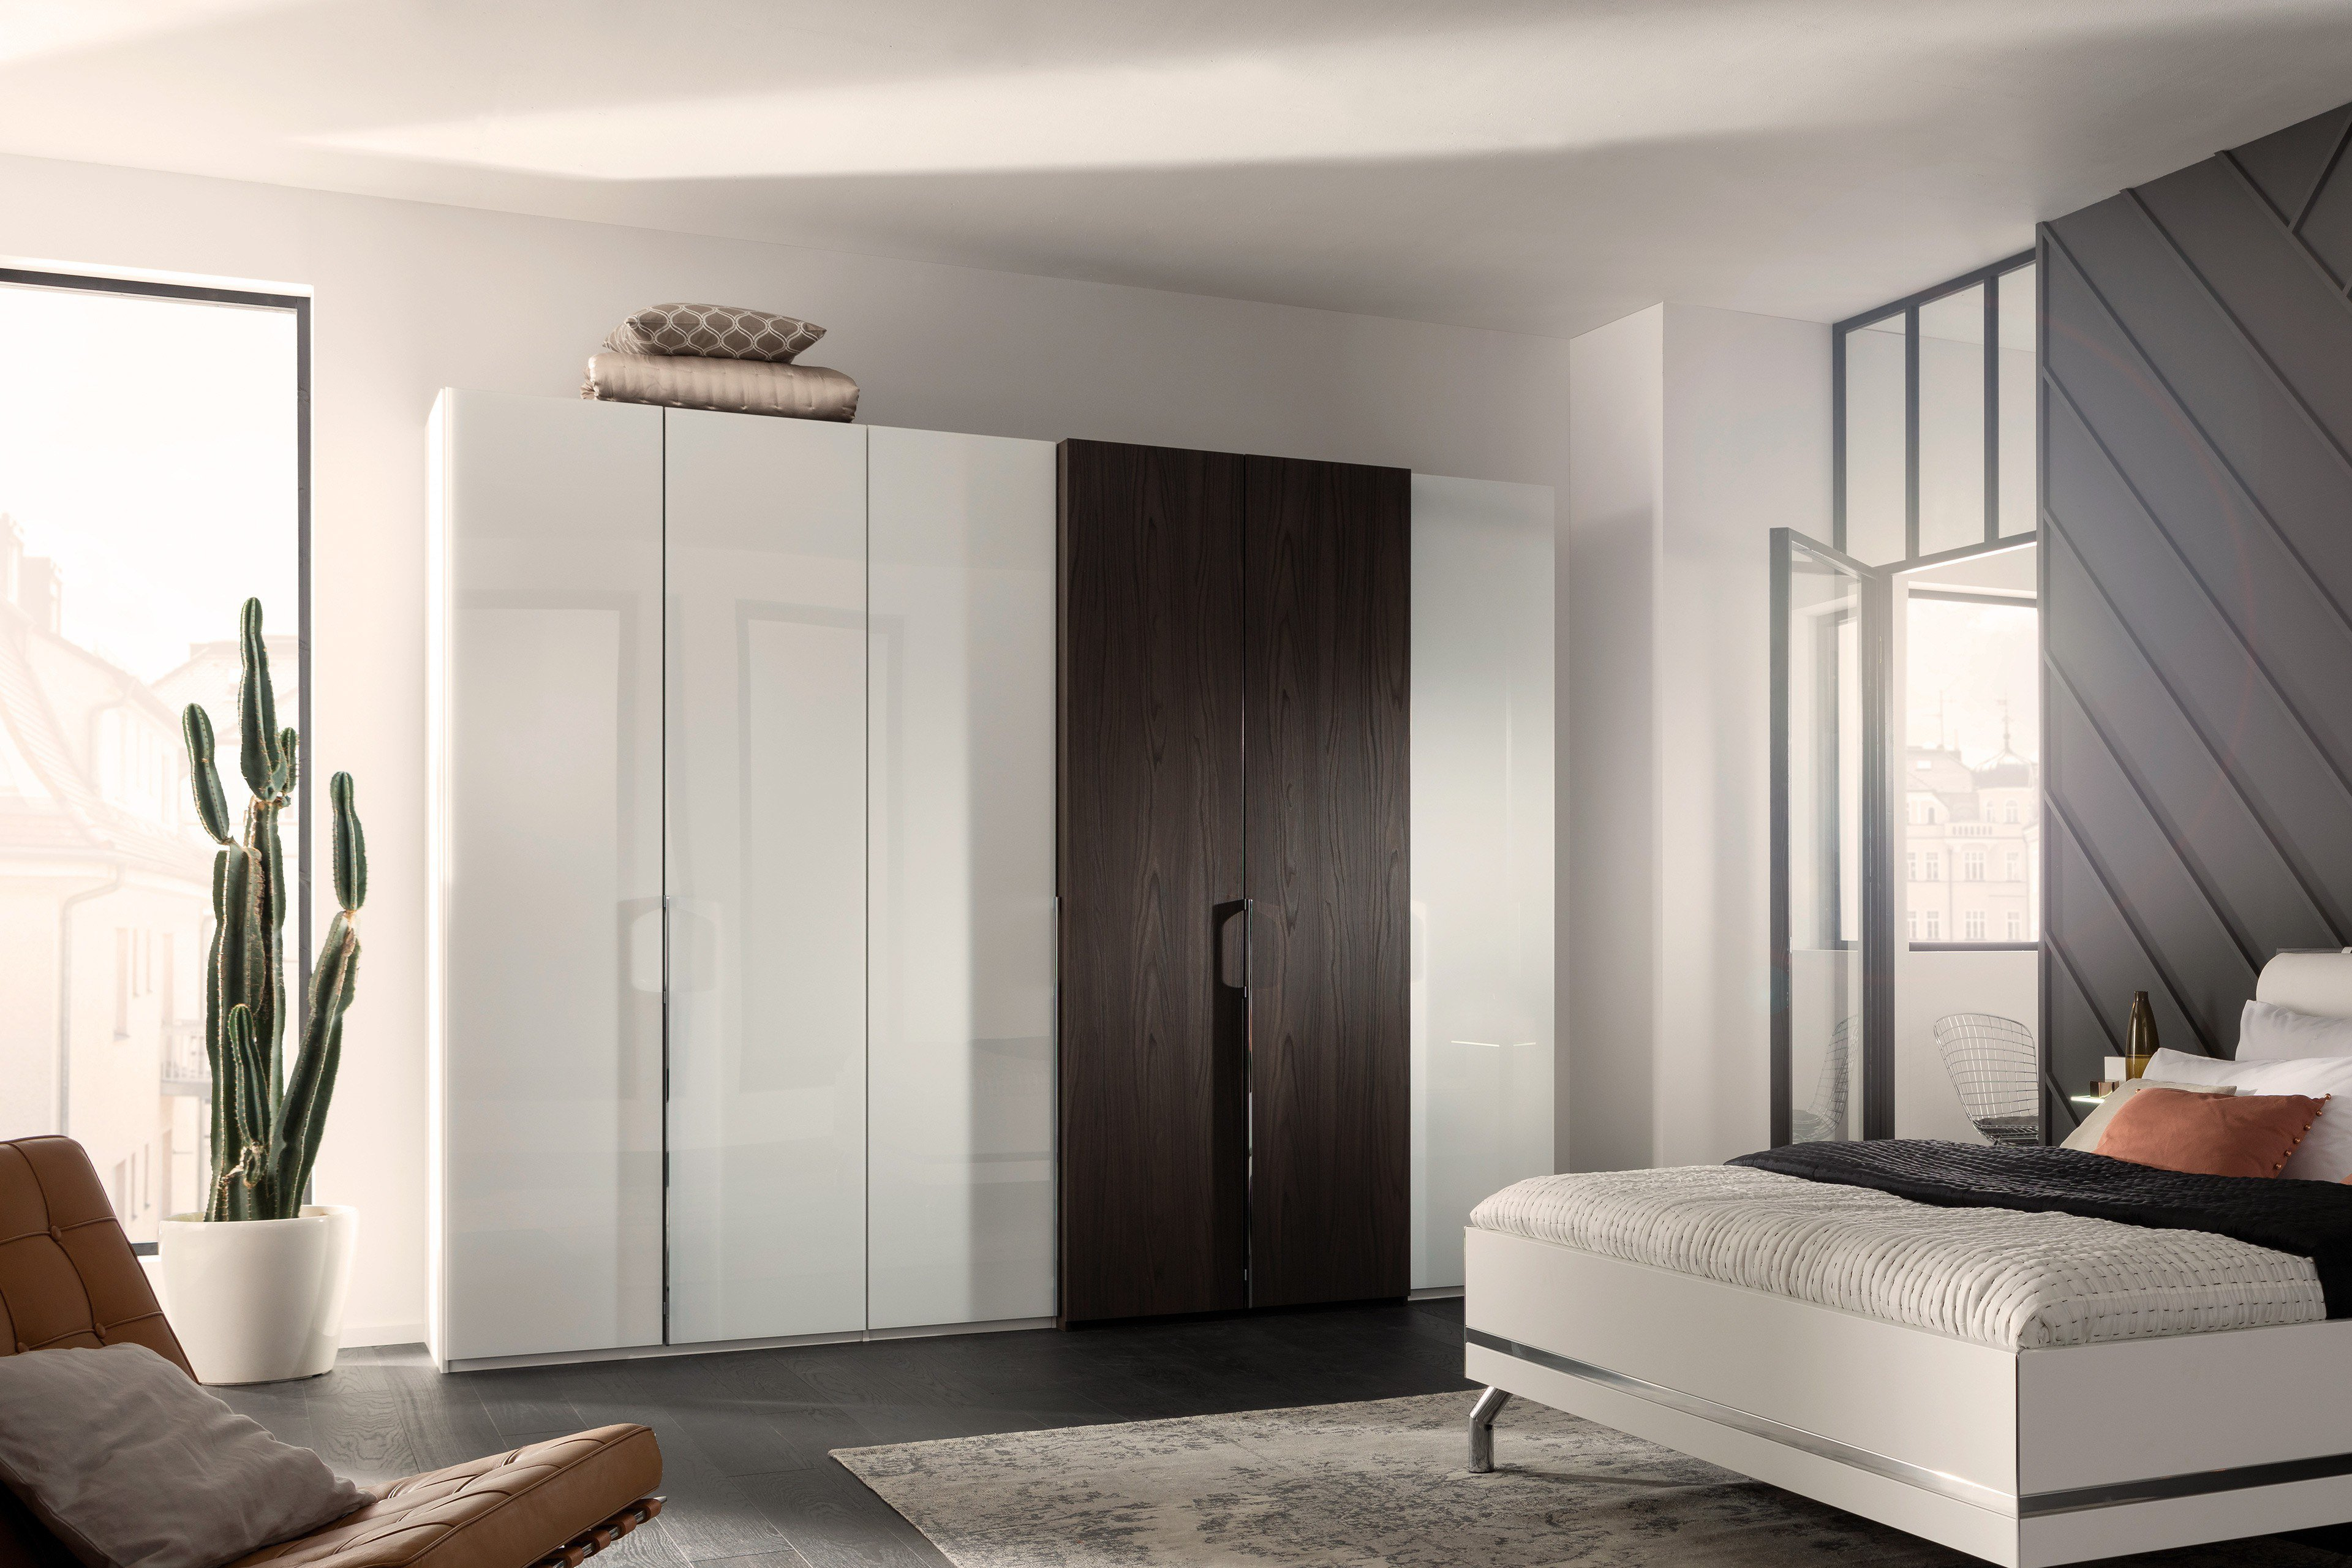 kleiderschrank wei hochglanz mit spiegel. Black Bedroom Furniture Sets. Home Design Ideas